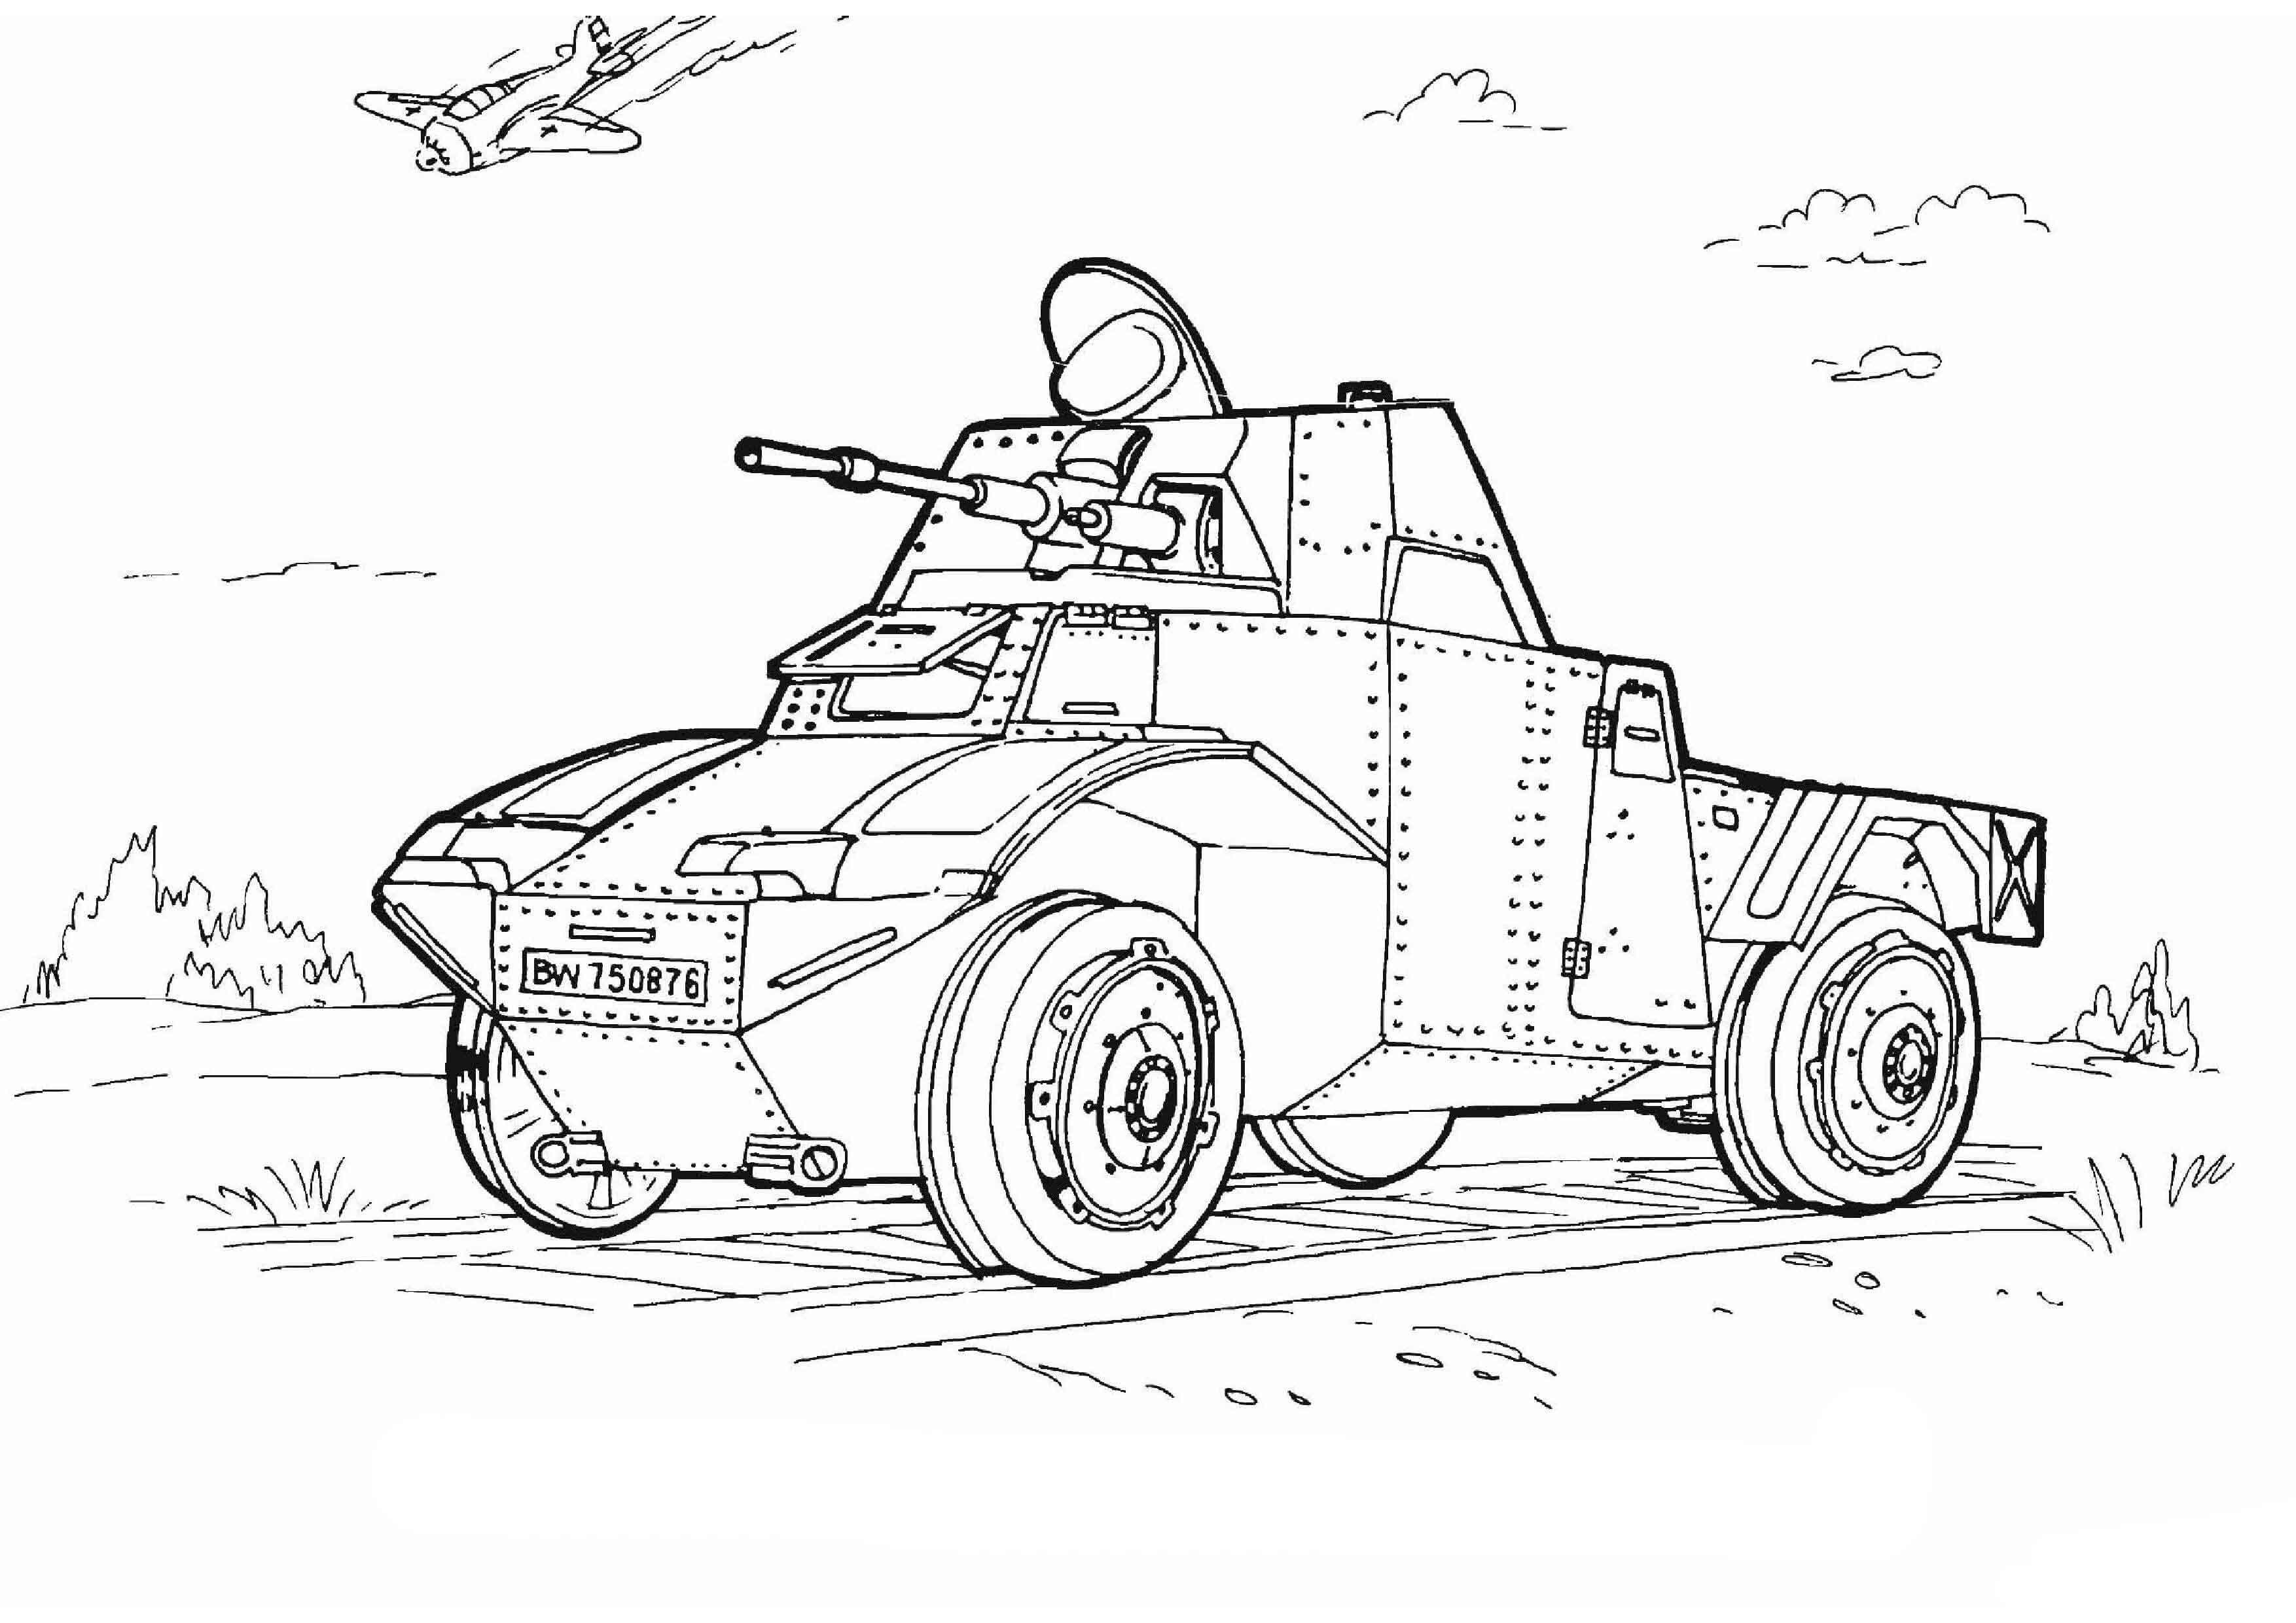 army truck coloring pages army vehicles coloring pages free colouring pictures to print truck pages coloring army